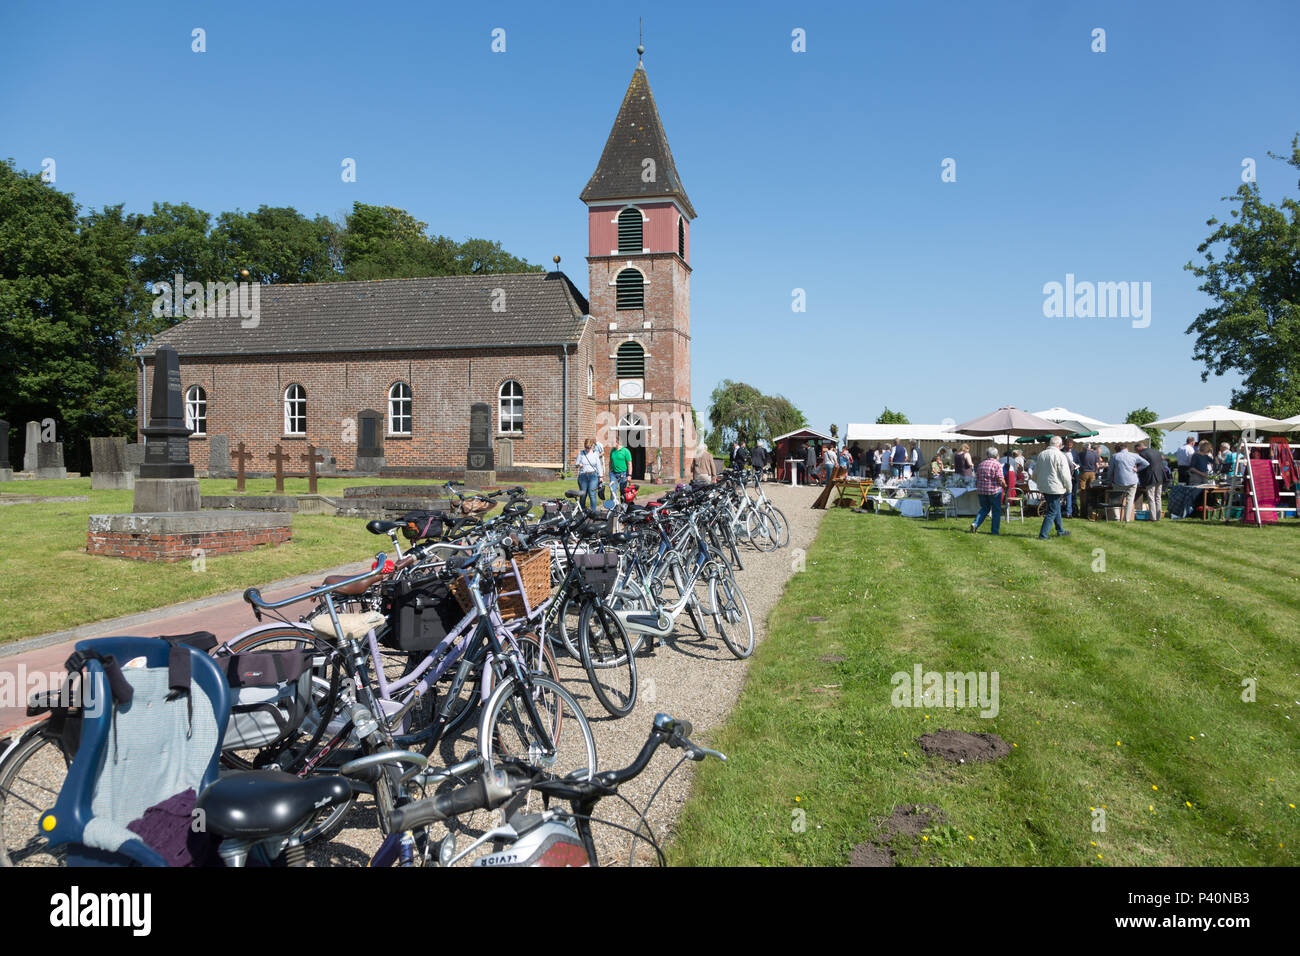 Bicycles stand in front of the church Landschaftspolder, Bunde, Rheiderland, Ostfriesland, Germany. - Stock Image